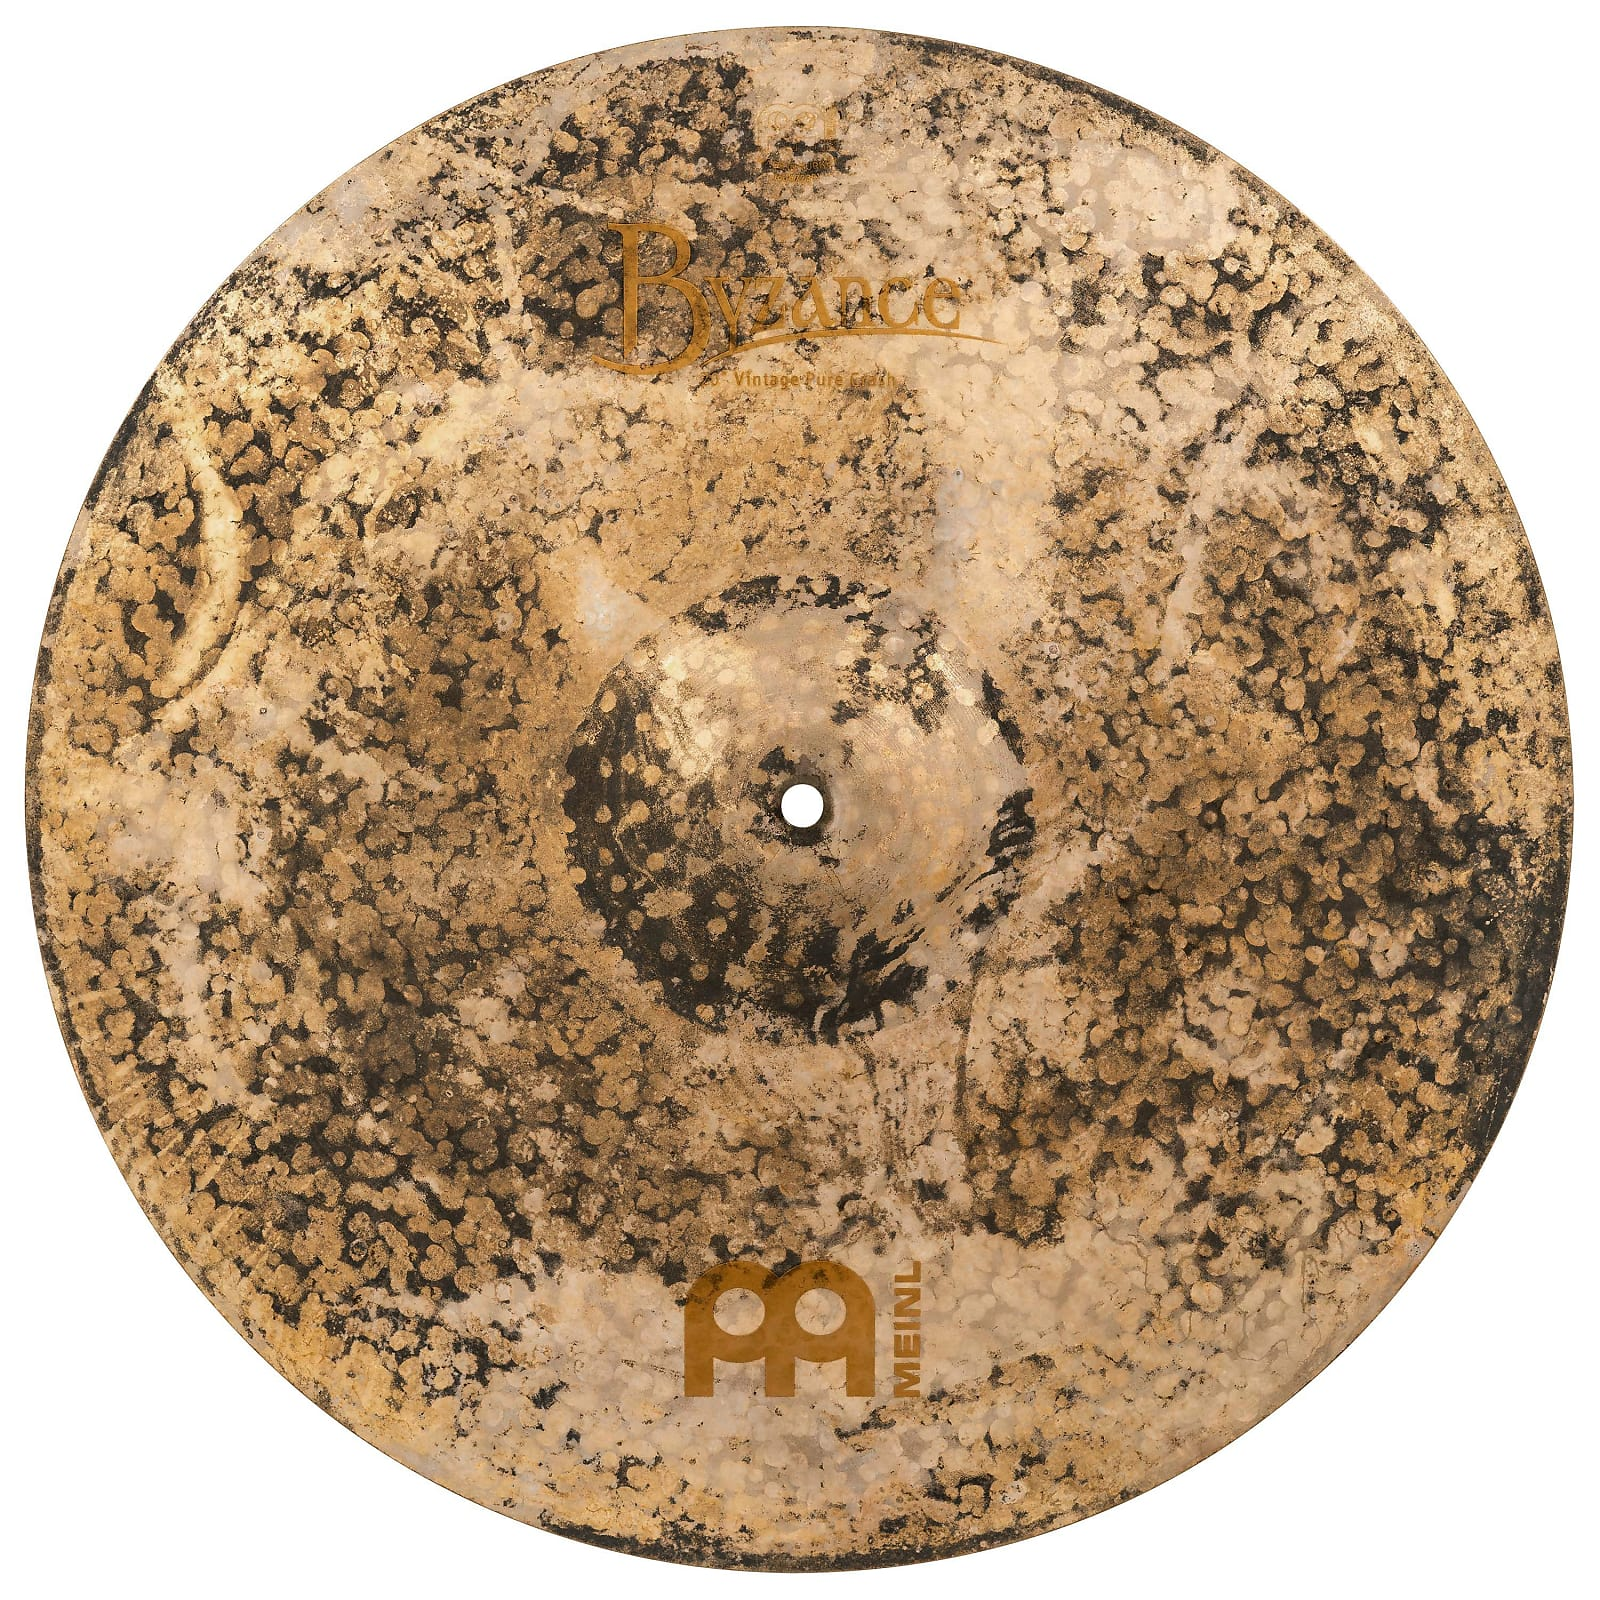 Meinl Cymbals B20VPC Byzance 20-Inch Vintage Pure Crash Cymbal (VIDEO)